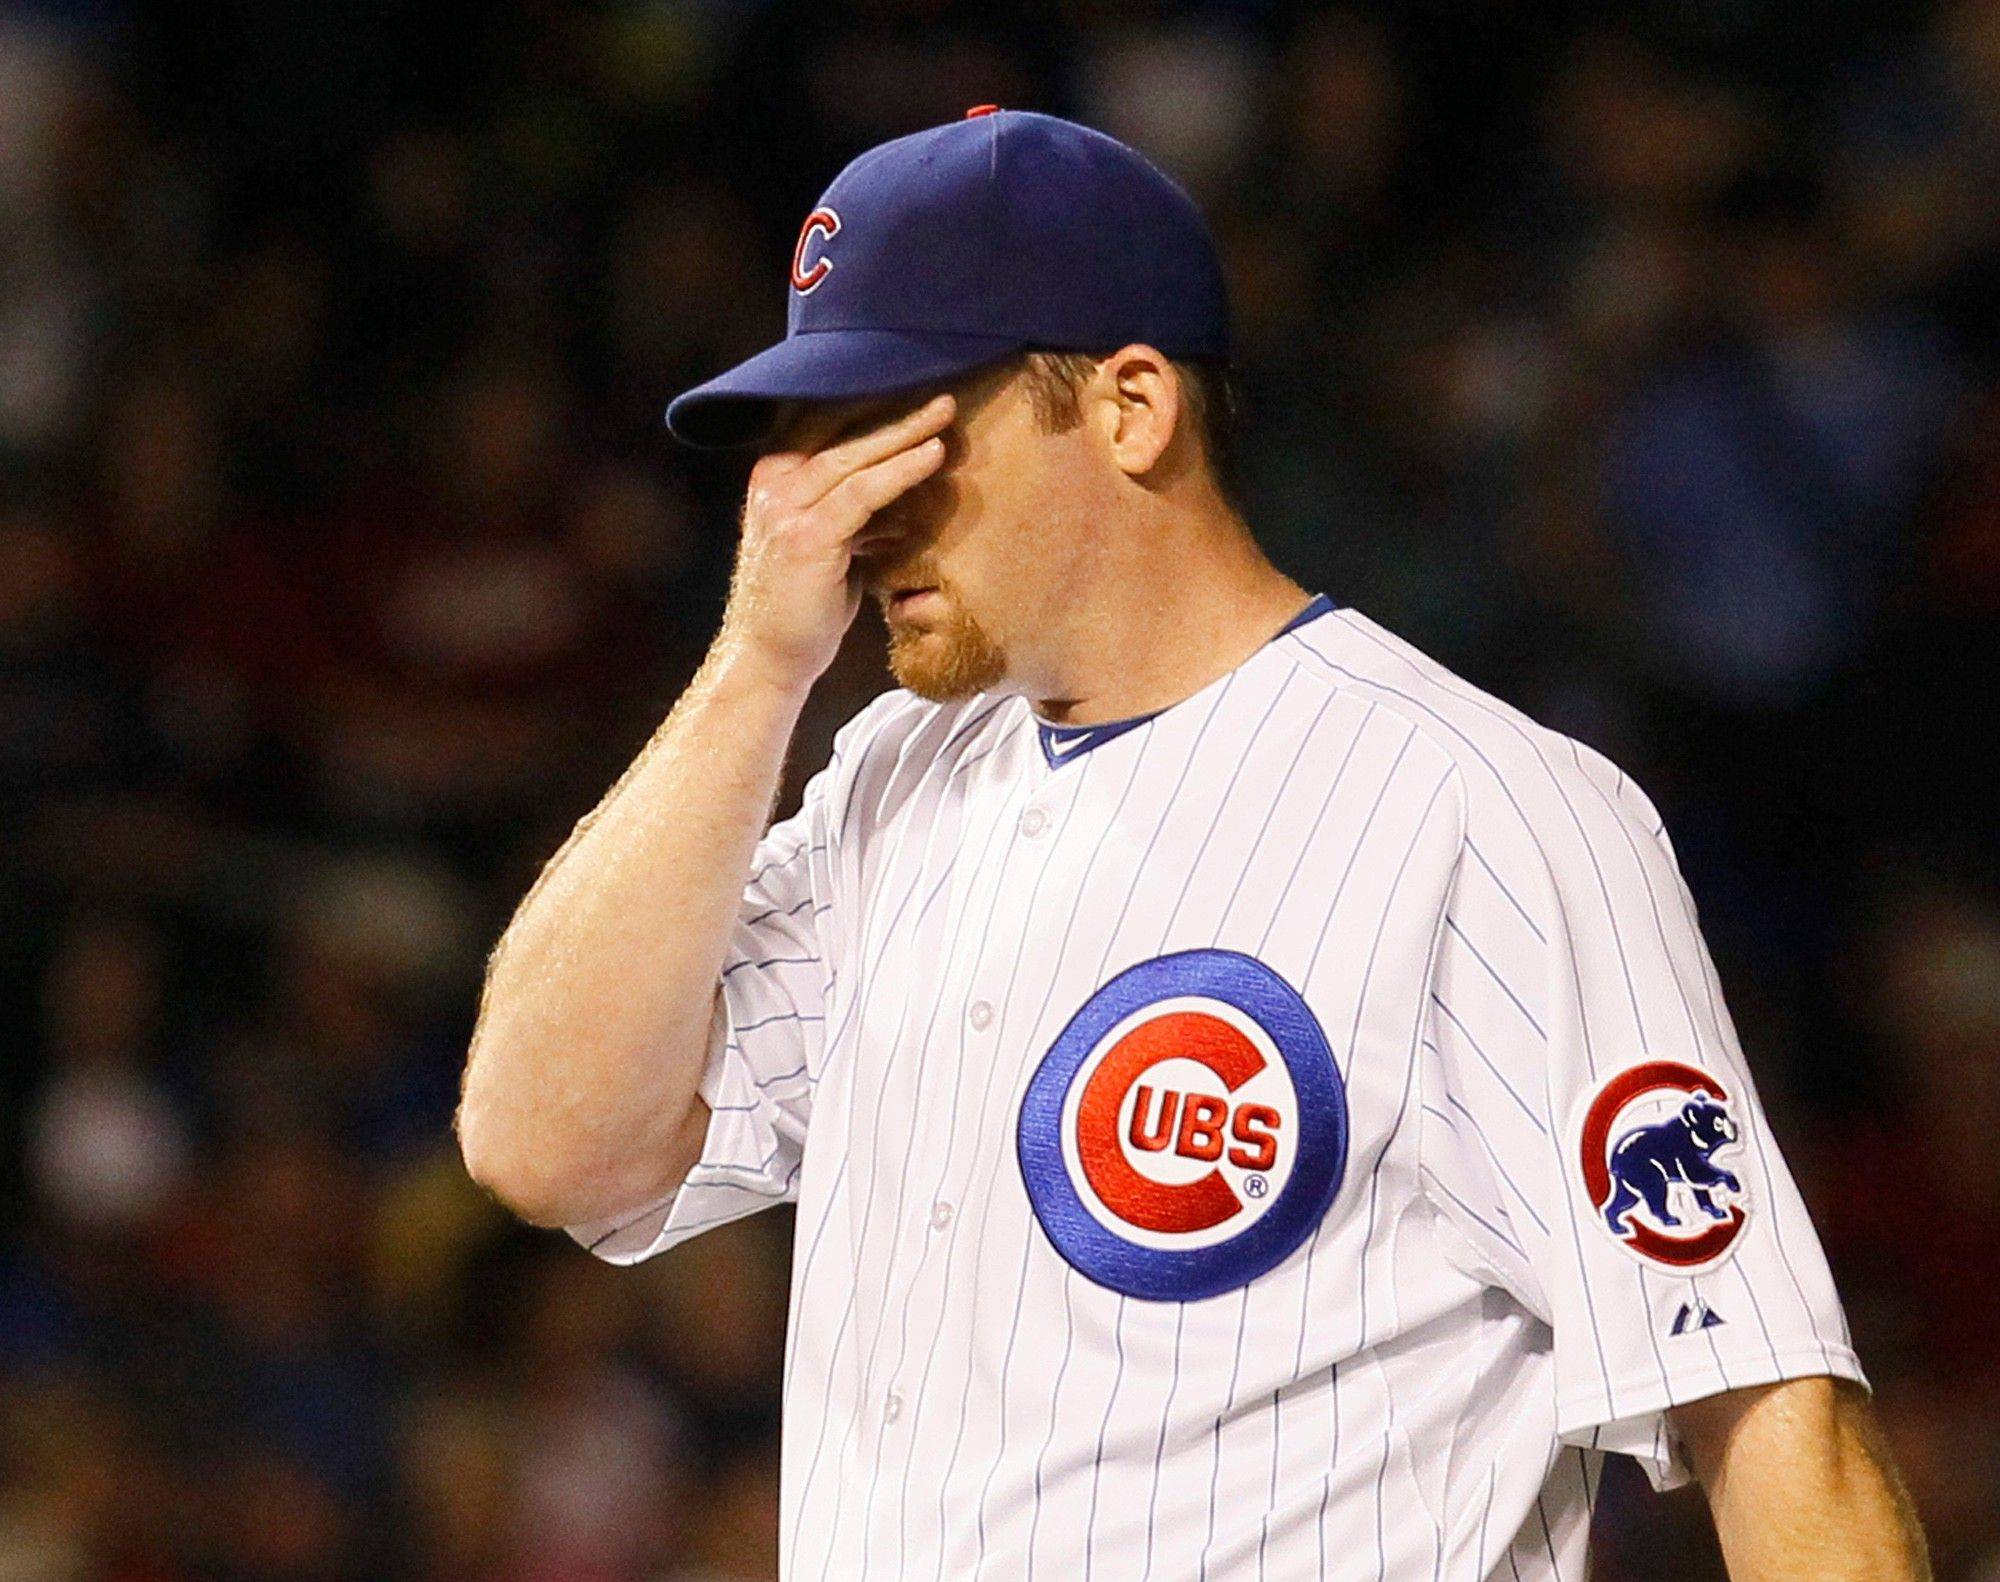 Cubs starting pitcher Ryan Dempster wipes the sweat from his face during Monday's fourth inning at Wrigley Field.